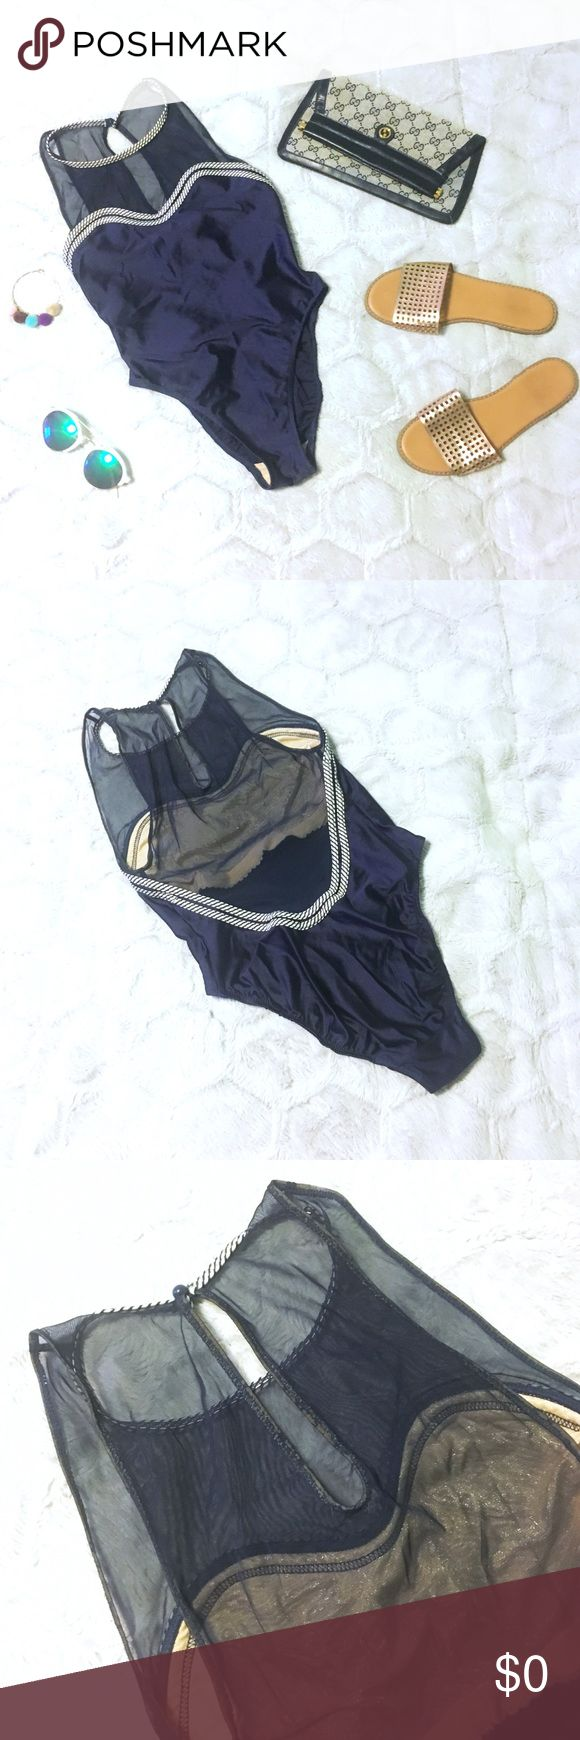 "Vintage Mesh Illusion Back One-Piece Swimsuit 👙 Vintage Gottex swimsuit in size medium petite. Tag is worn and no longer legible. Measures 26"" across bust unstretched, bust stretches to 32"", approx. 25"" from shoulder to crotch. Front clavicle and top back have a sheer mesh fabric. Trimming around neckline, bust and back waist have a striped detail. Elastic around armholes and back keyhole is worn and has started to separate (see pics). Please ask questions and feel free to bundle with other…"